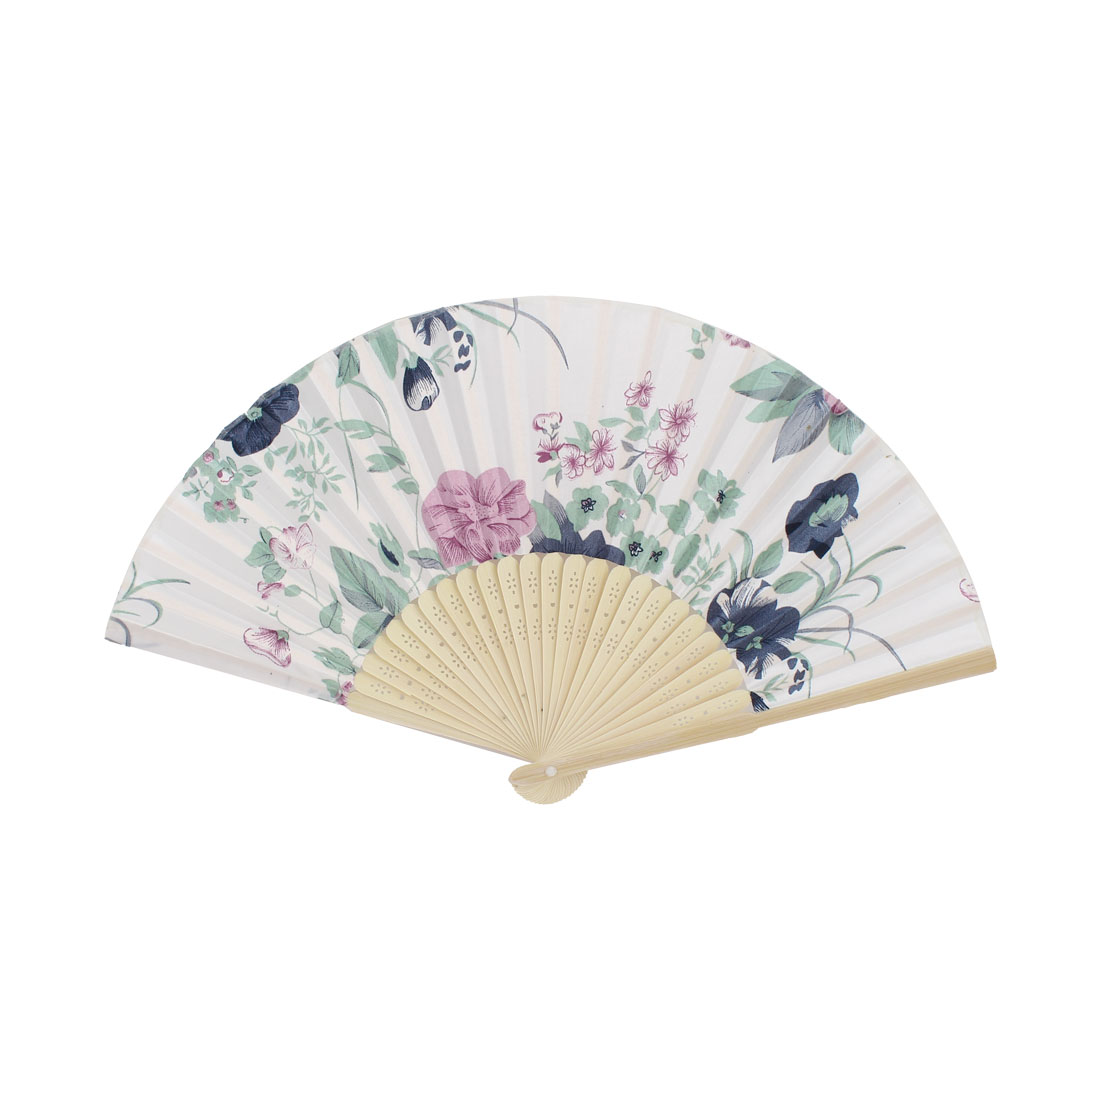 Tri-color Flower Pattern Hollow Out Design Bamboo Ribs Folded Hand Fan White